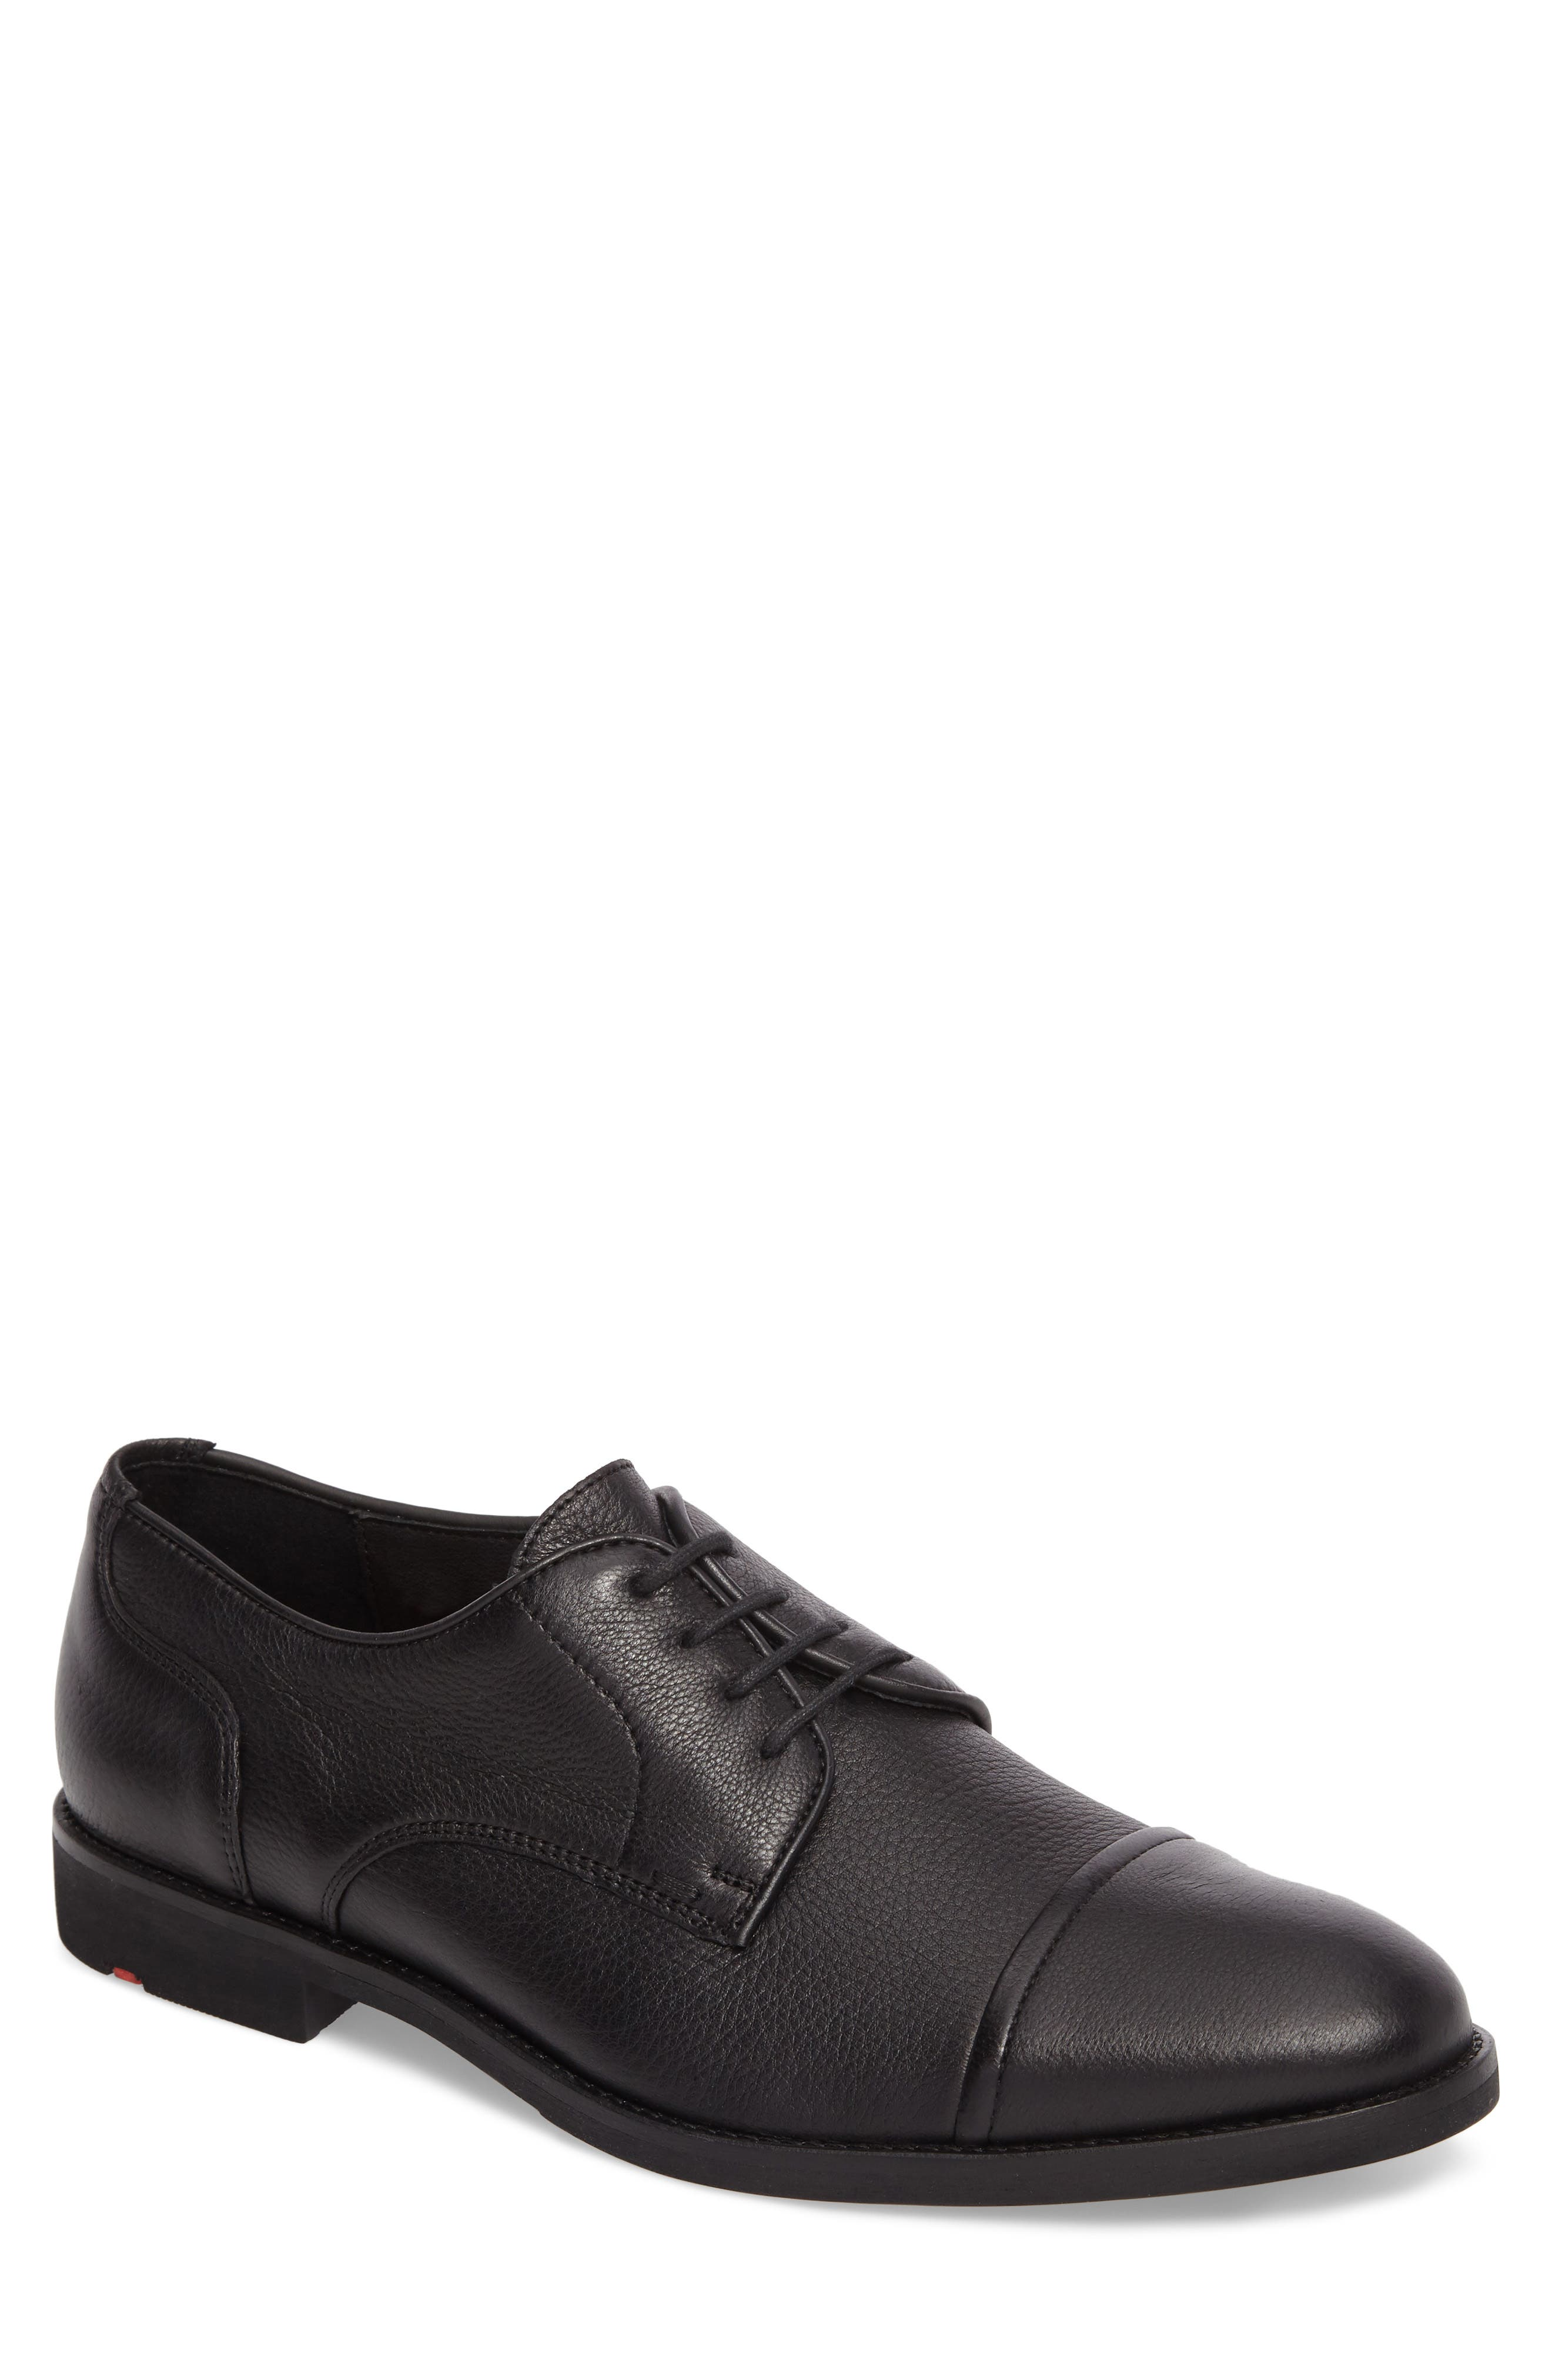 Richmond Cap Toe Derby,                         Main,                         color, Black Leather